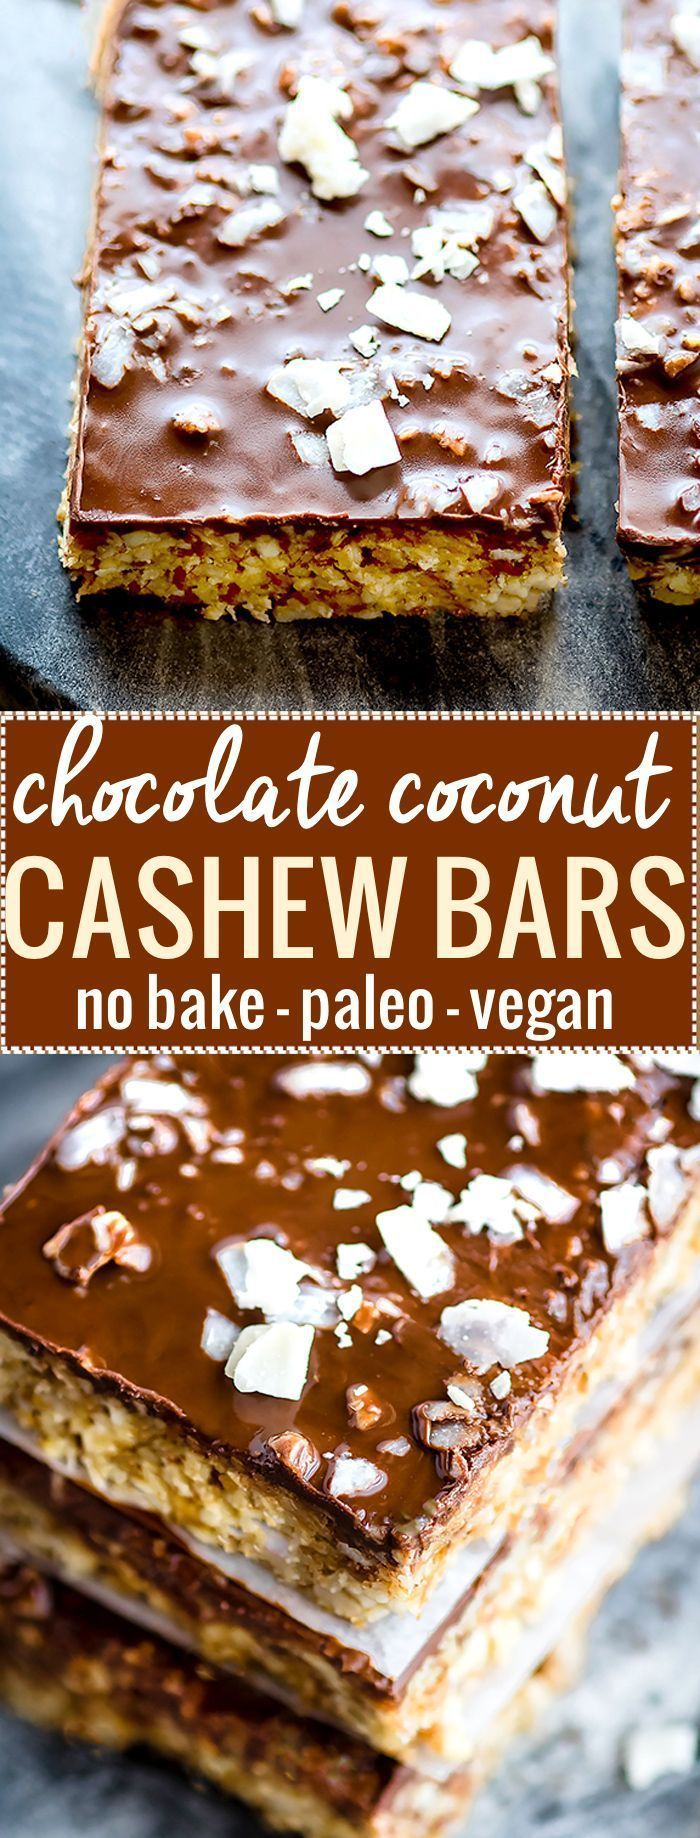 No bake Chocolate Coconut Cashew Bars made in 3 easy steps! These no bake chocolat